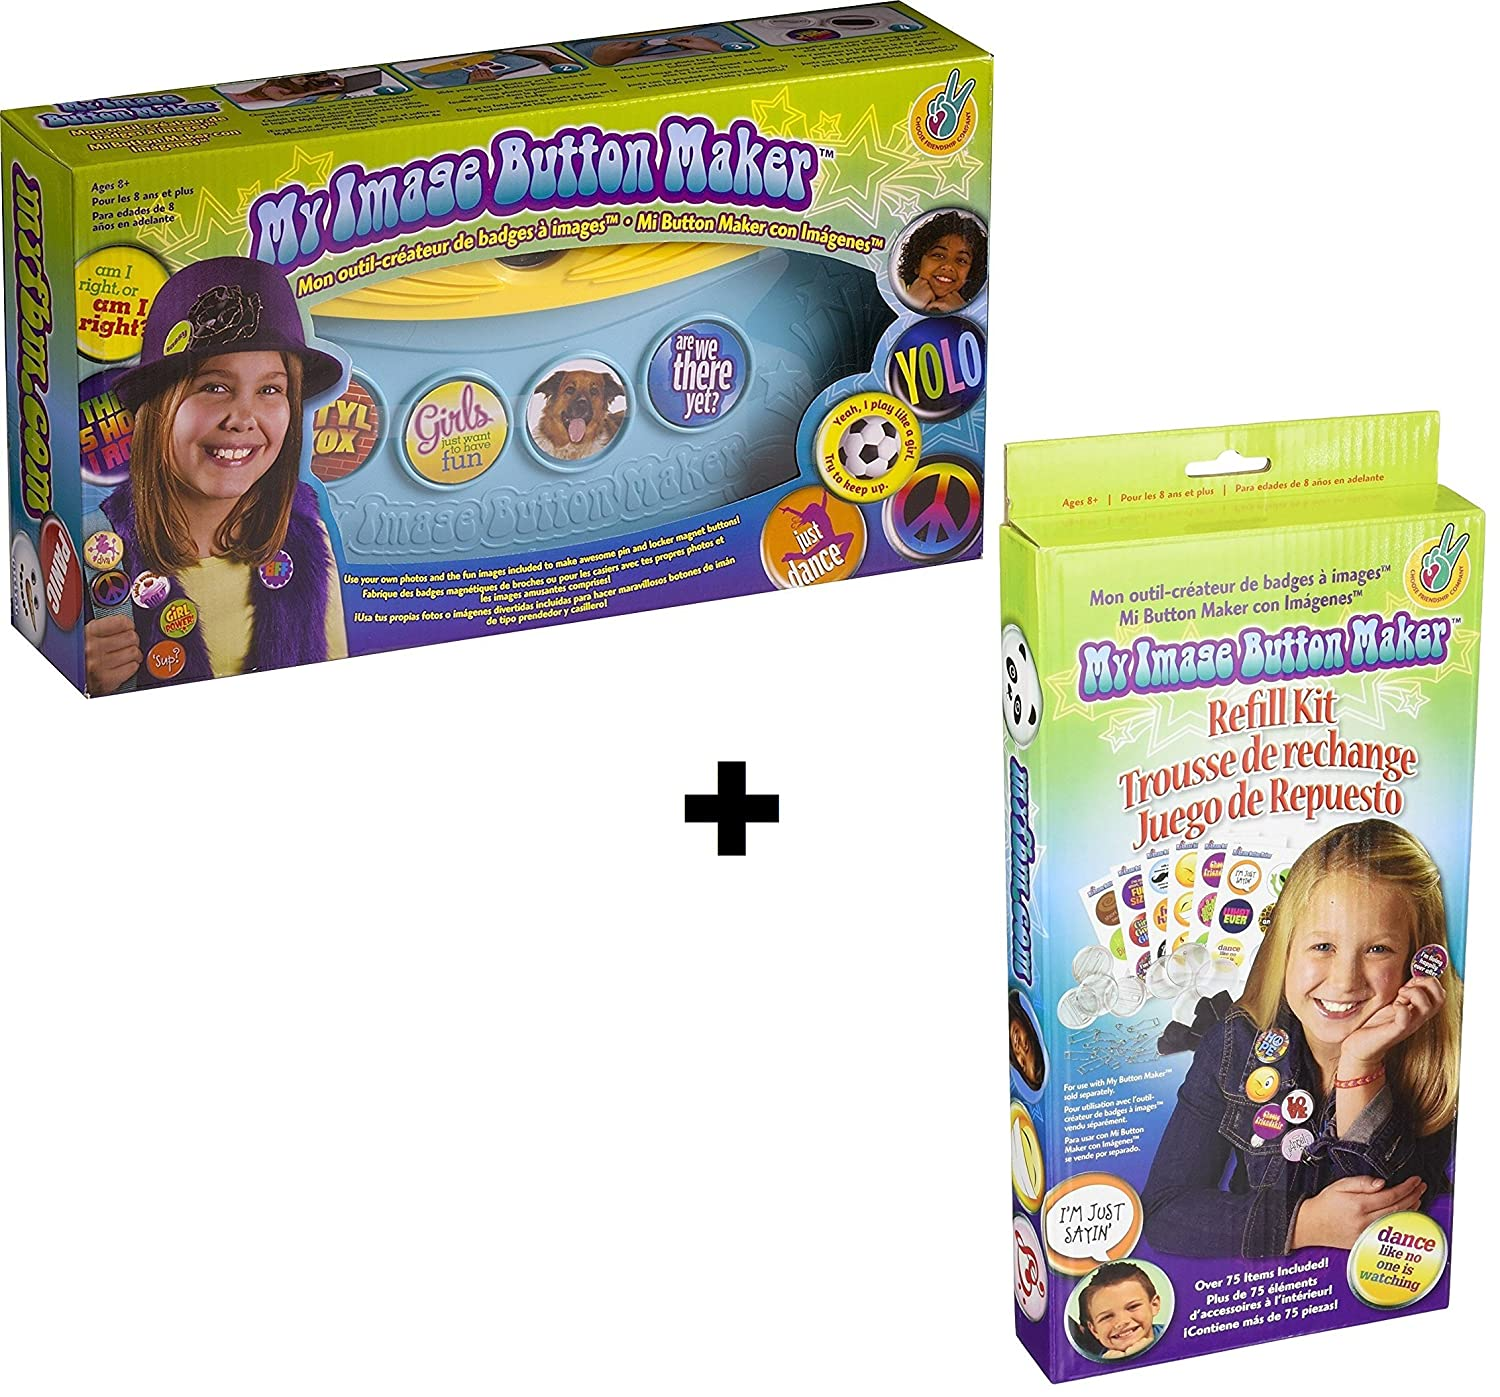 Makes 30 Buttons Kids Badge Button Kit Blue//Yellow Choose Friendship Bundle My Image Button Maker Refill Kit